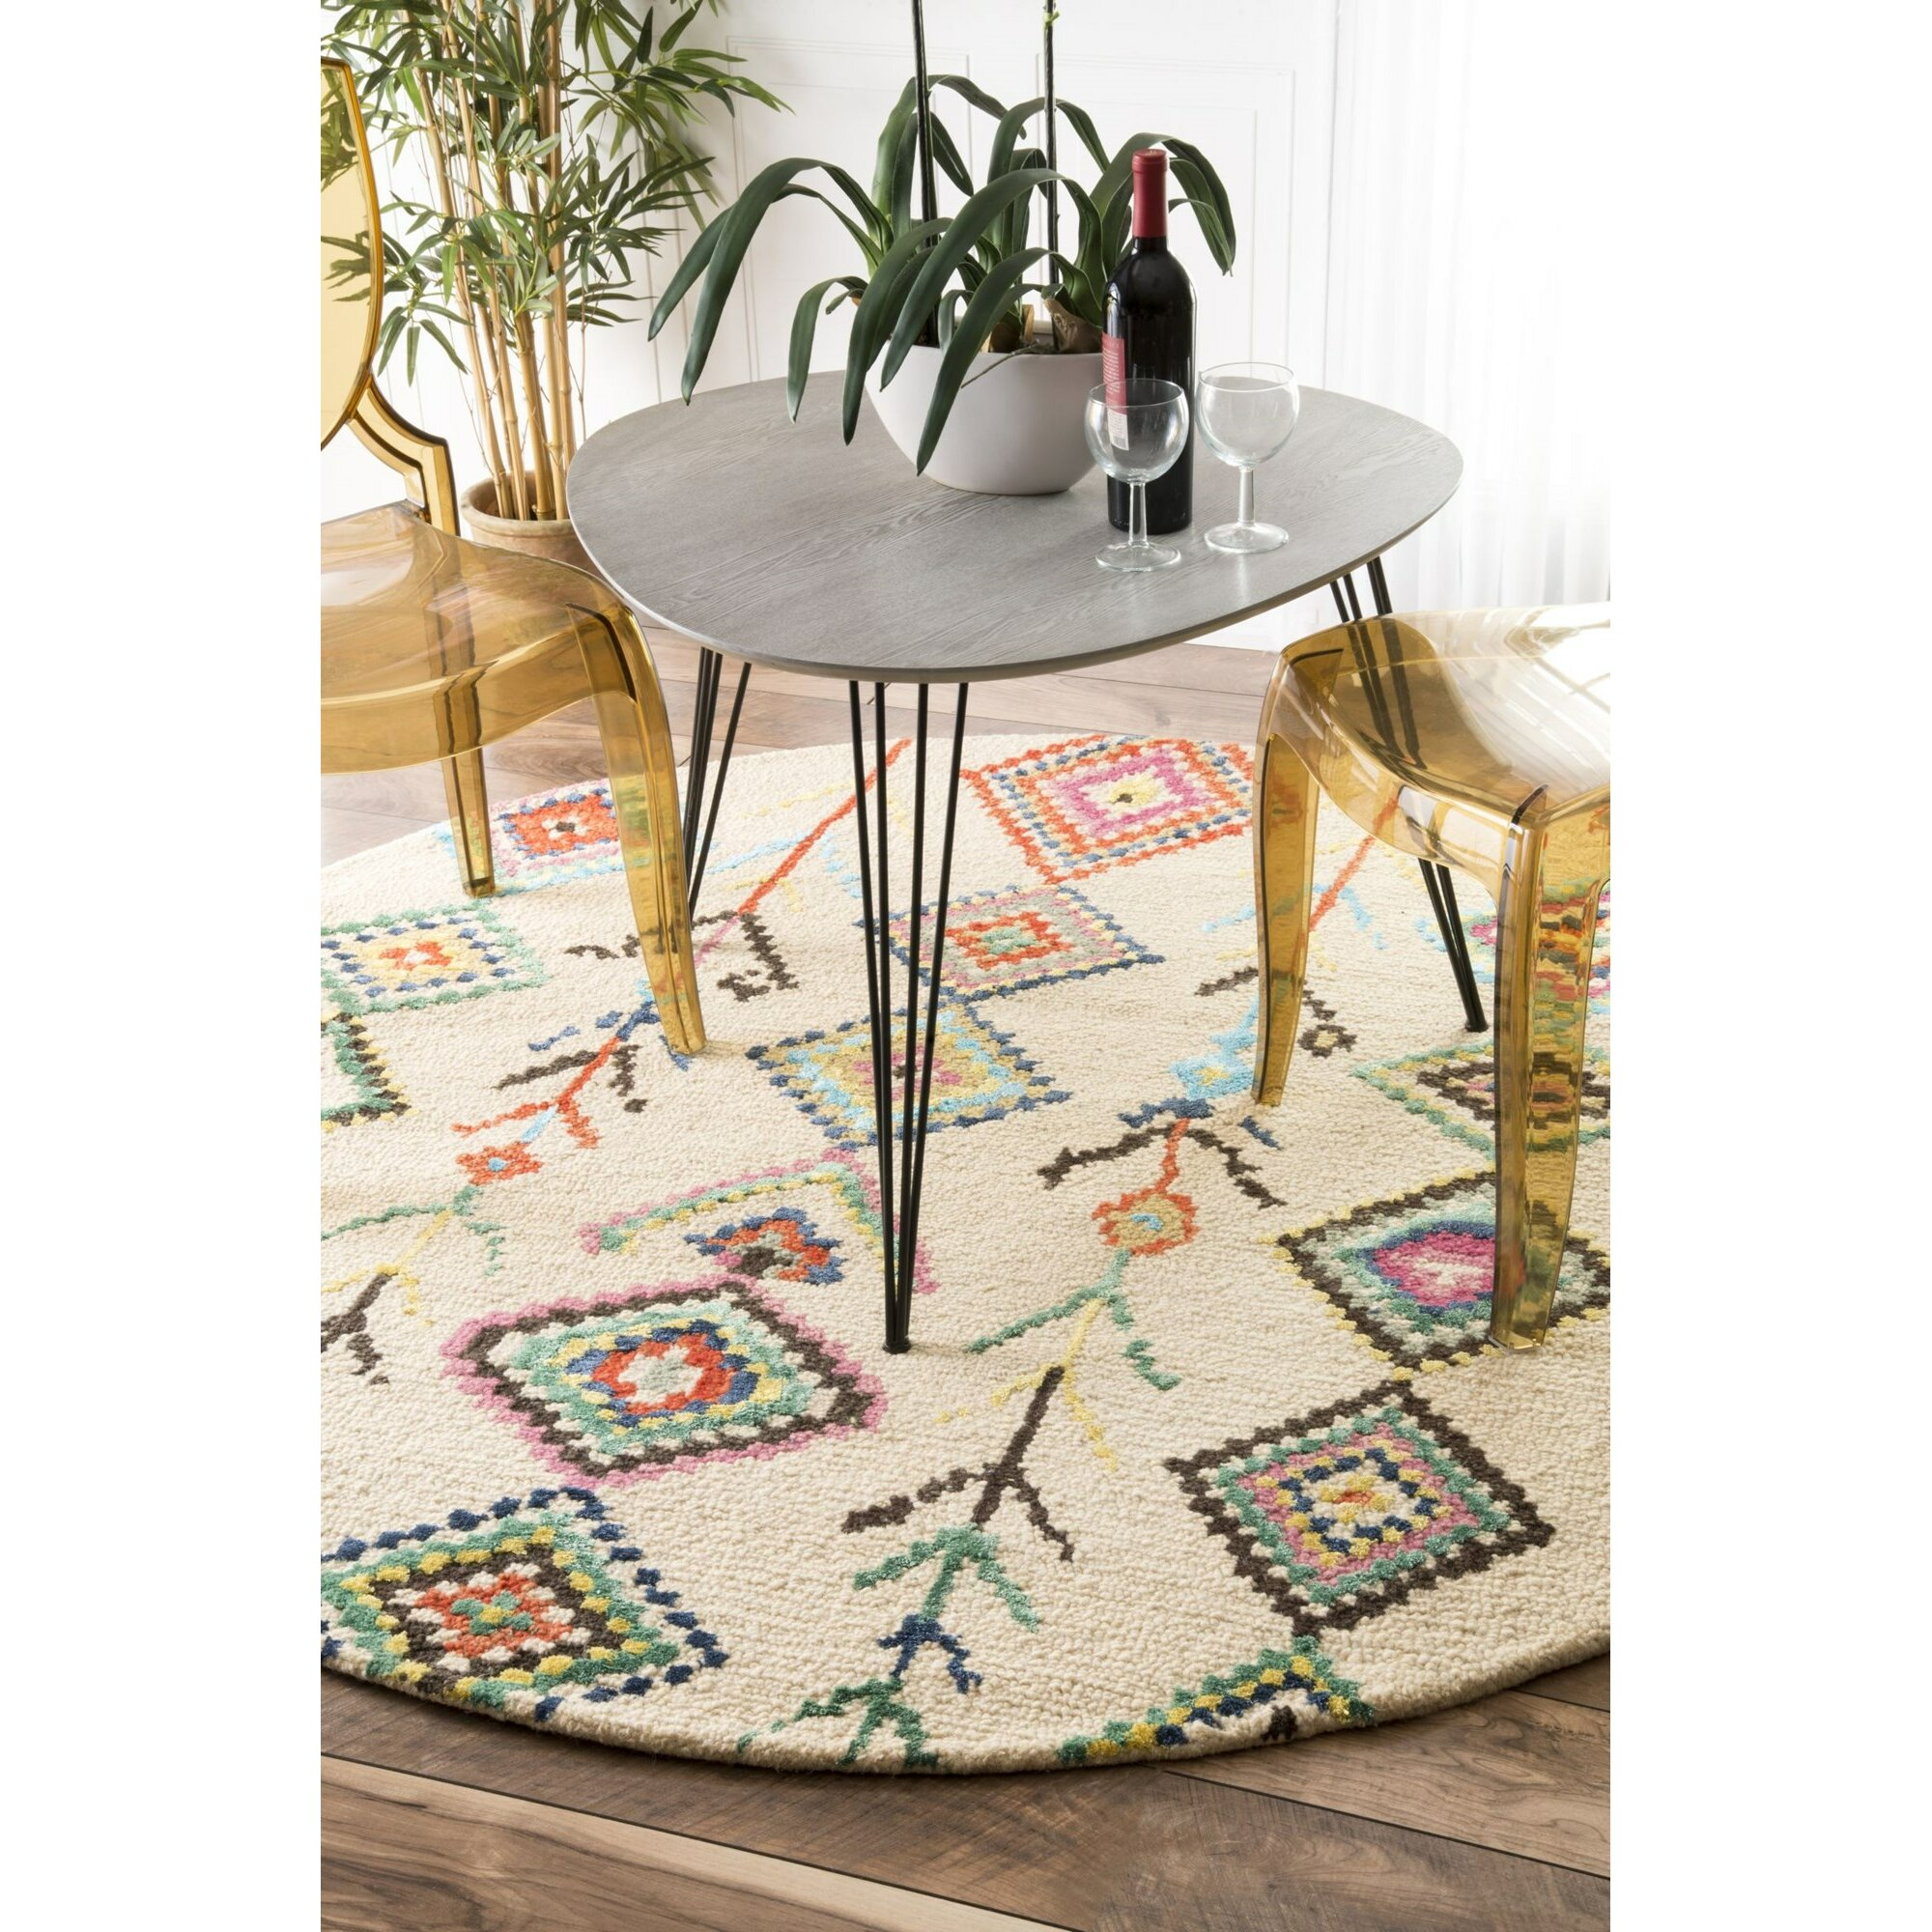 Dog Eating Wool Rug: Brayden Studio Cotto Marbella Belini Area Rug & Reviews